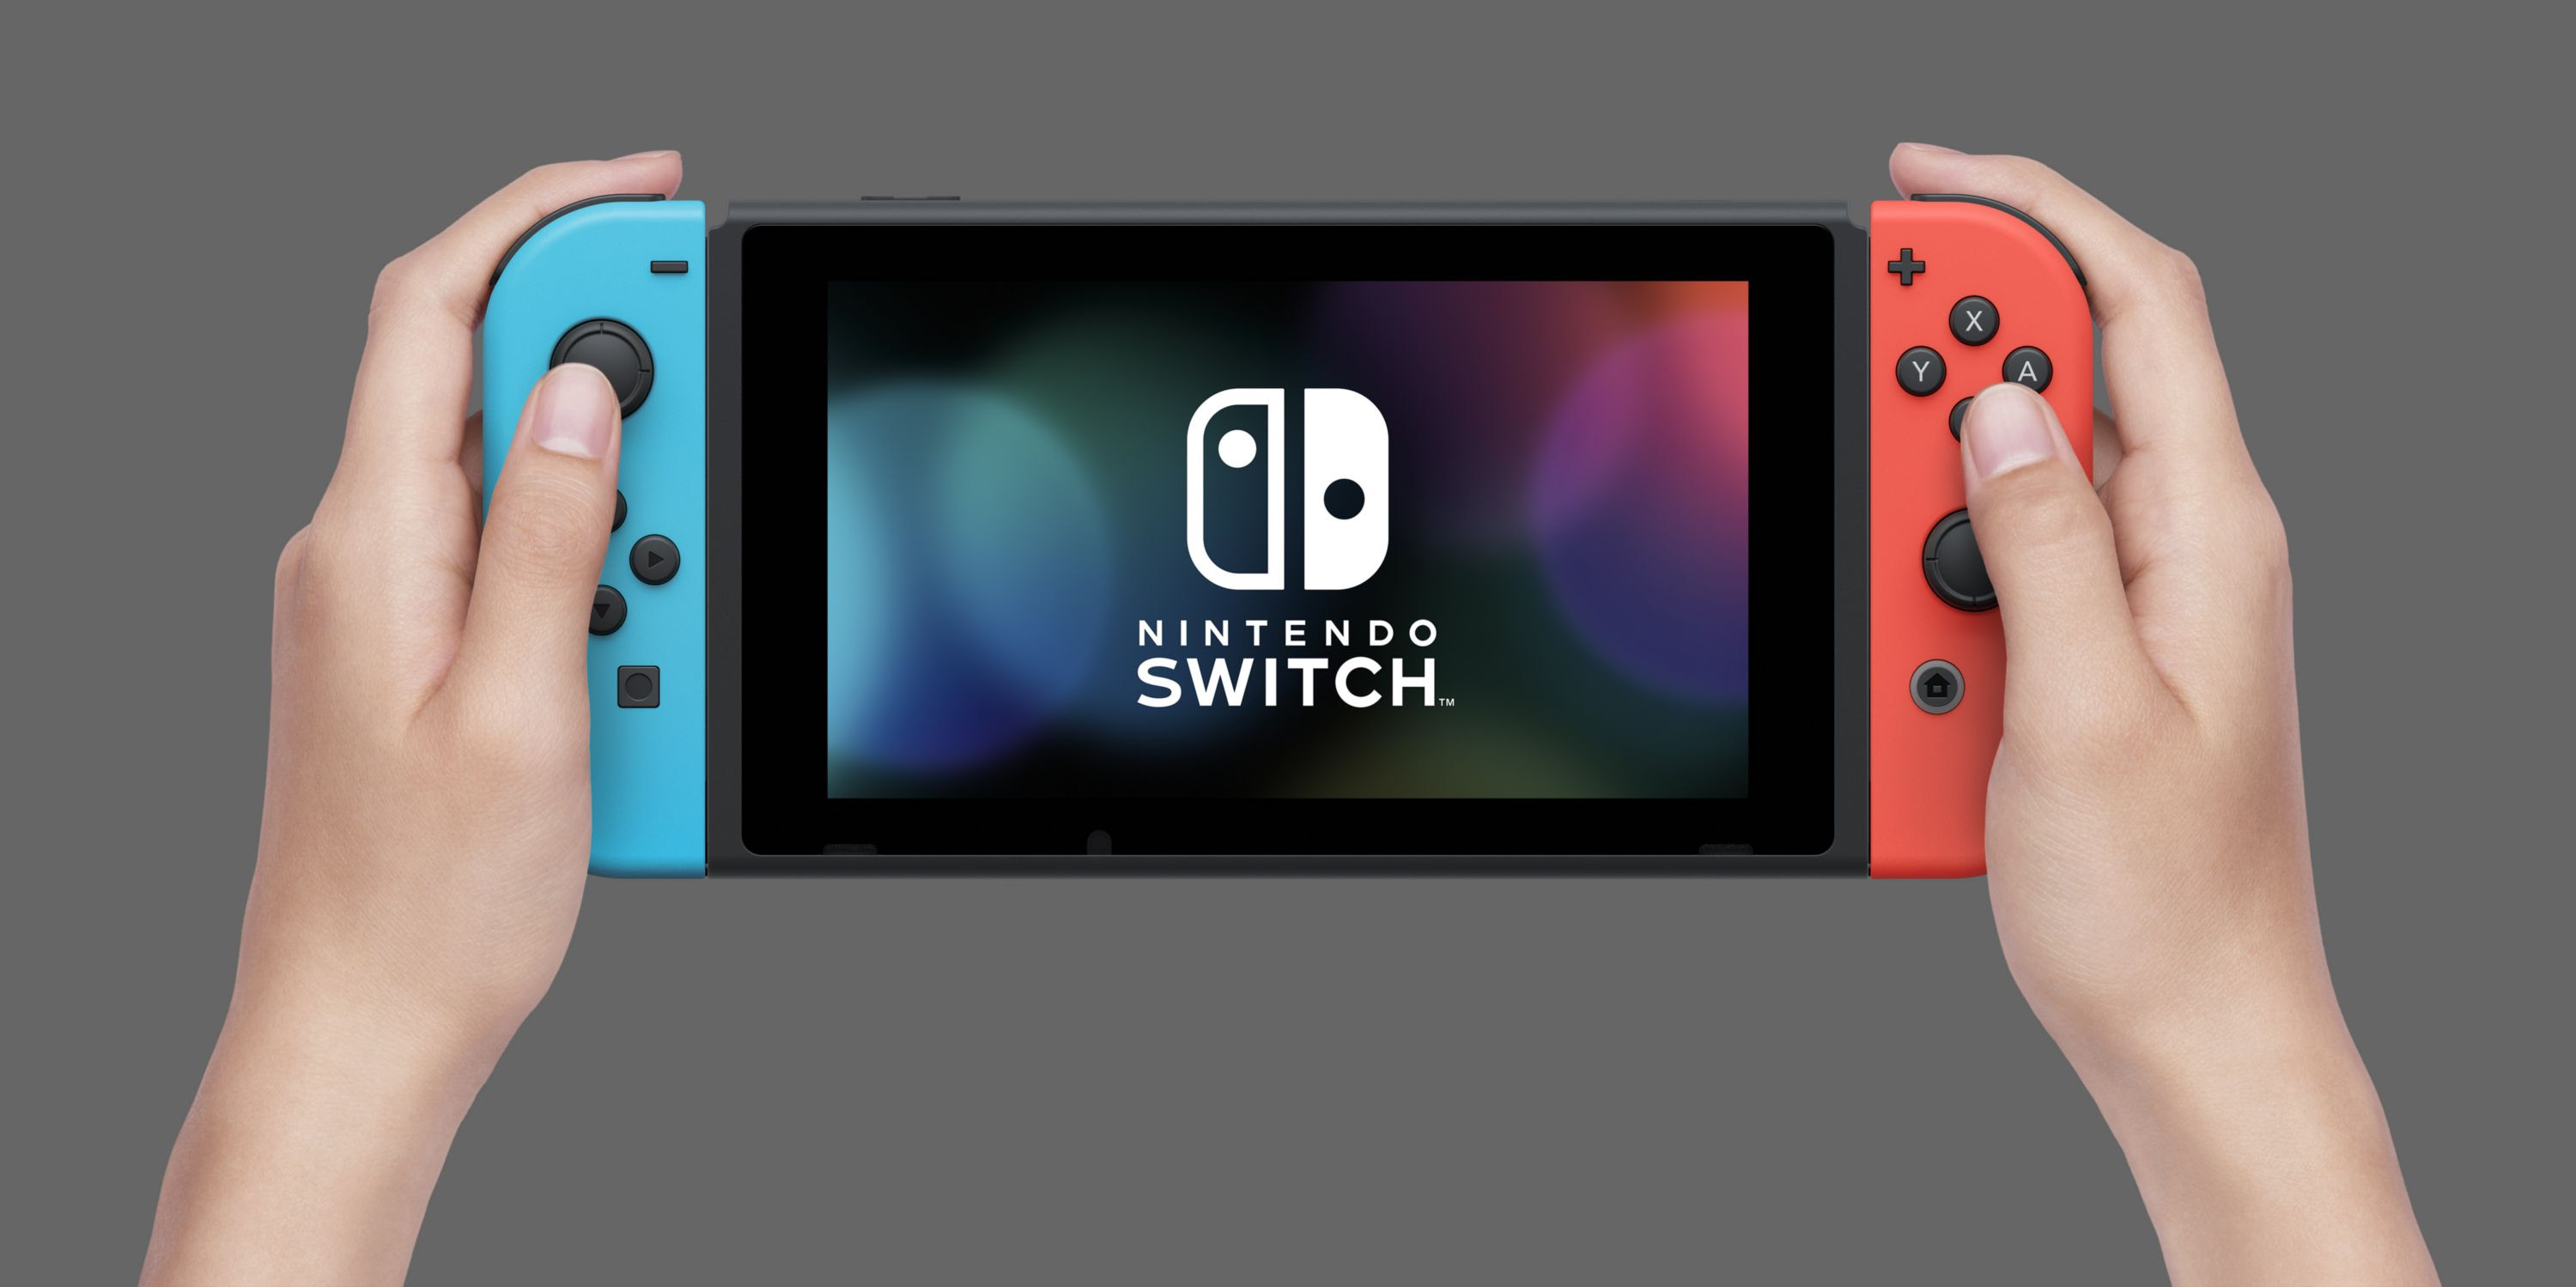 http://images.eurogamer.net/2018/articles/2018-01-09-16-10/NintendoSwitch_hardware_Console_05_1.jpg